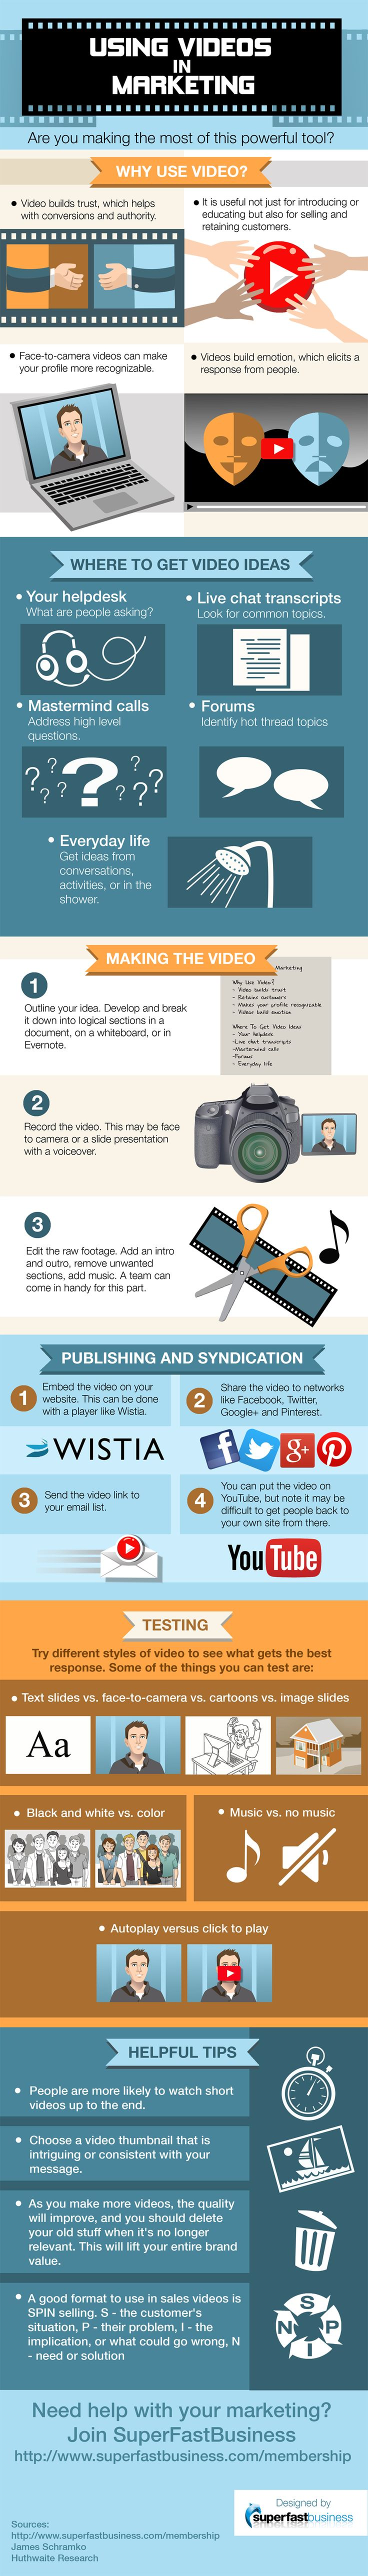 #Infographic: Using #Videos In Marketing